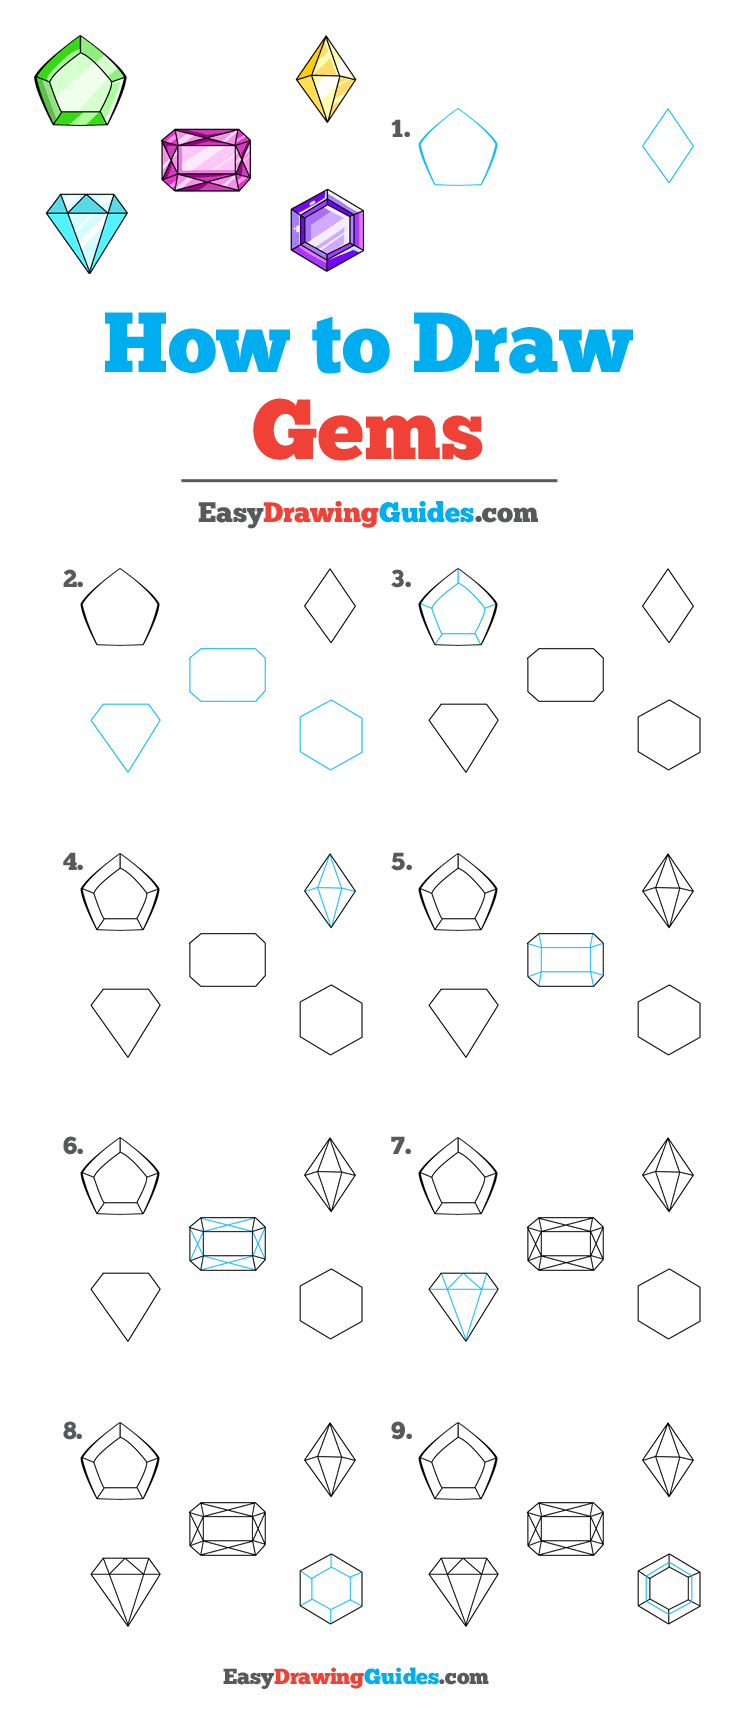 How to Draw Gems - Really Easy Drawing Tutorial